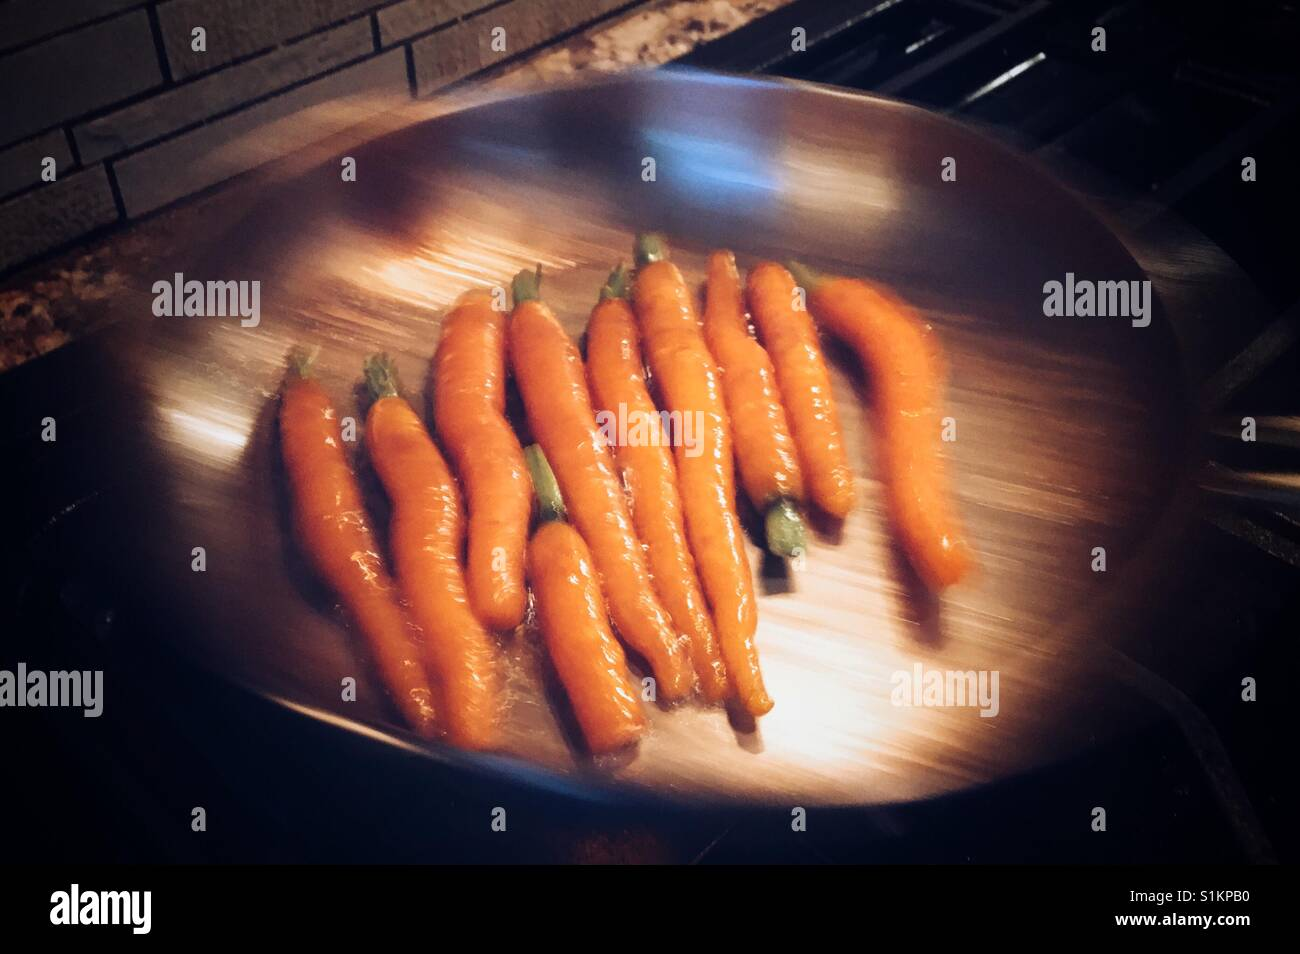 Farm fresh seasonal carrots simmering in butter being tossed in frying pan. - Stock Image